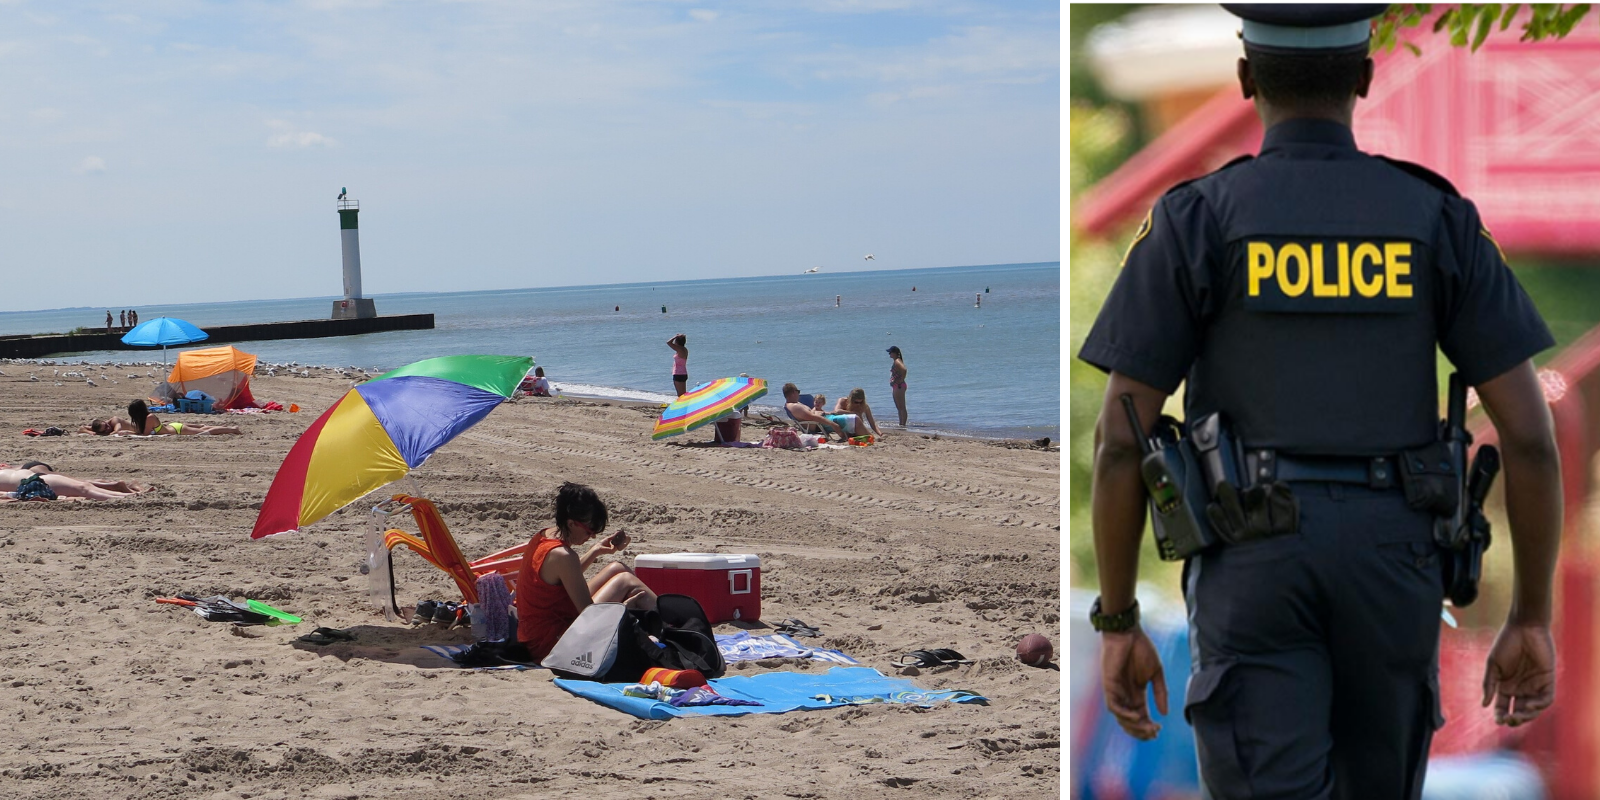 Ontario residents fined BIG TIME for small beach gathering